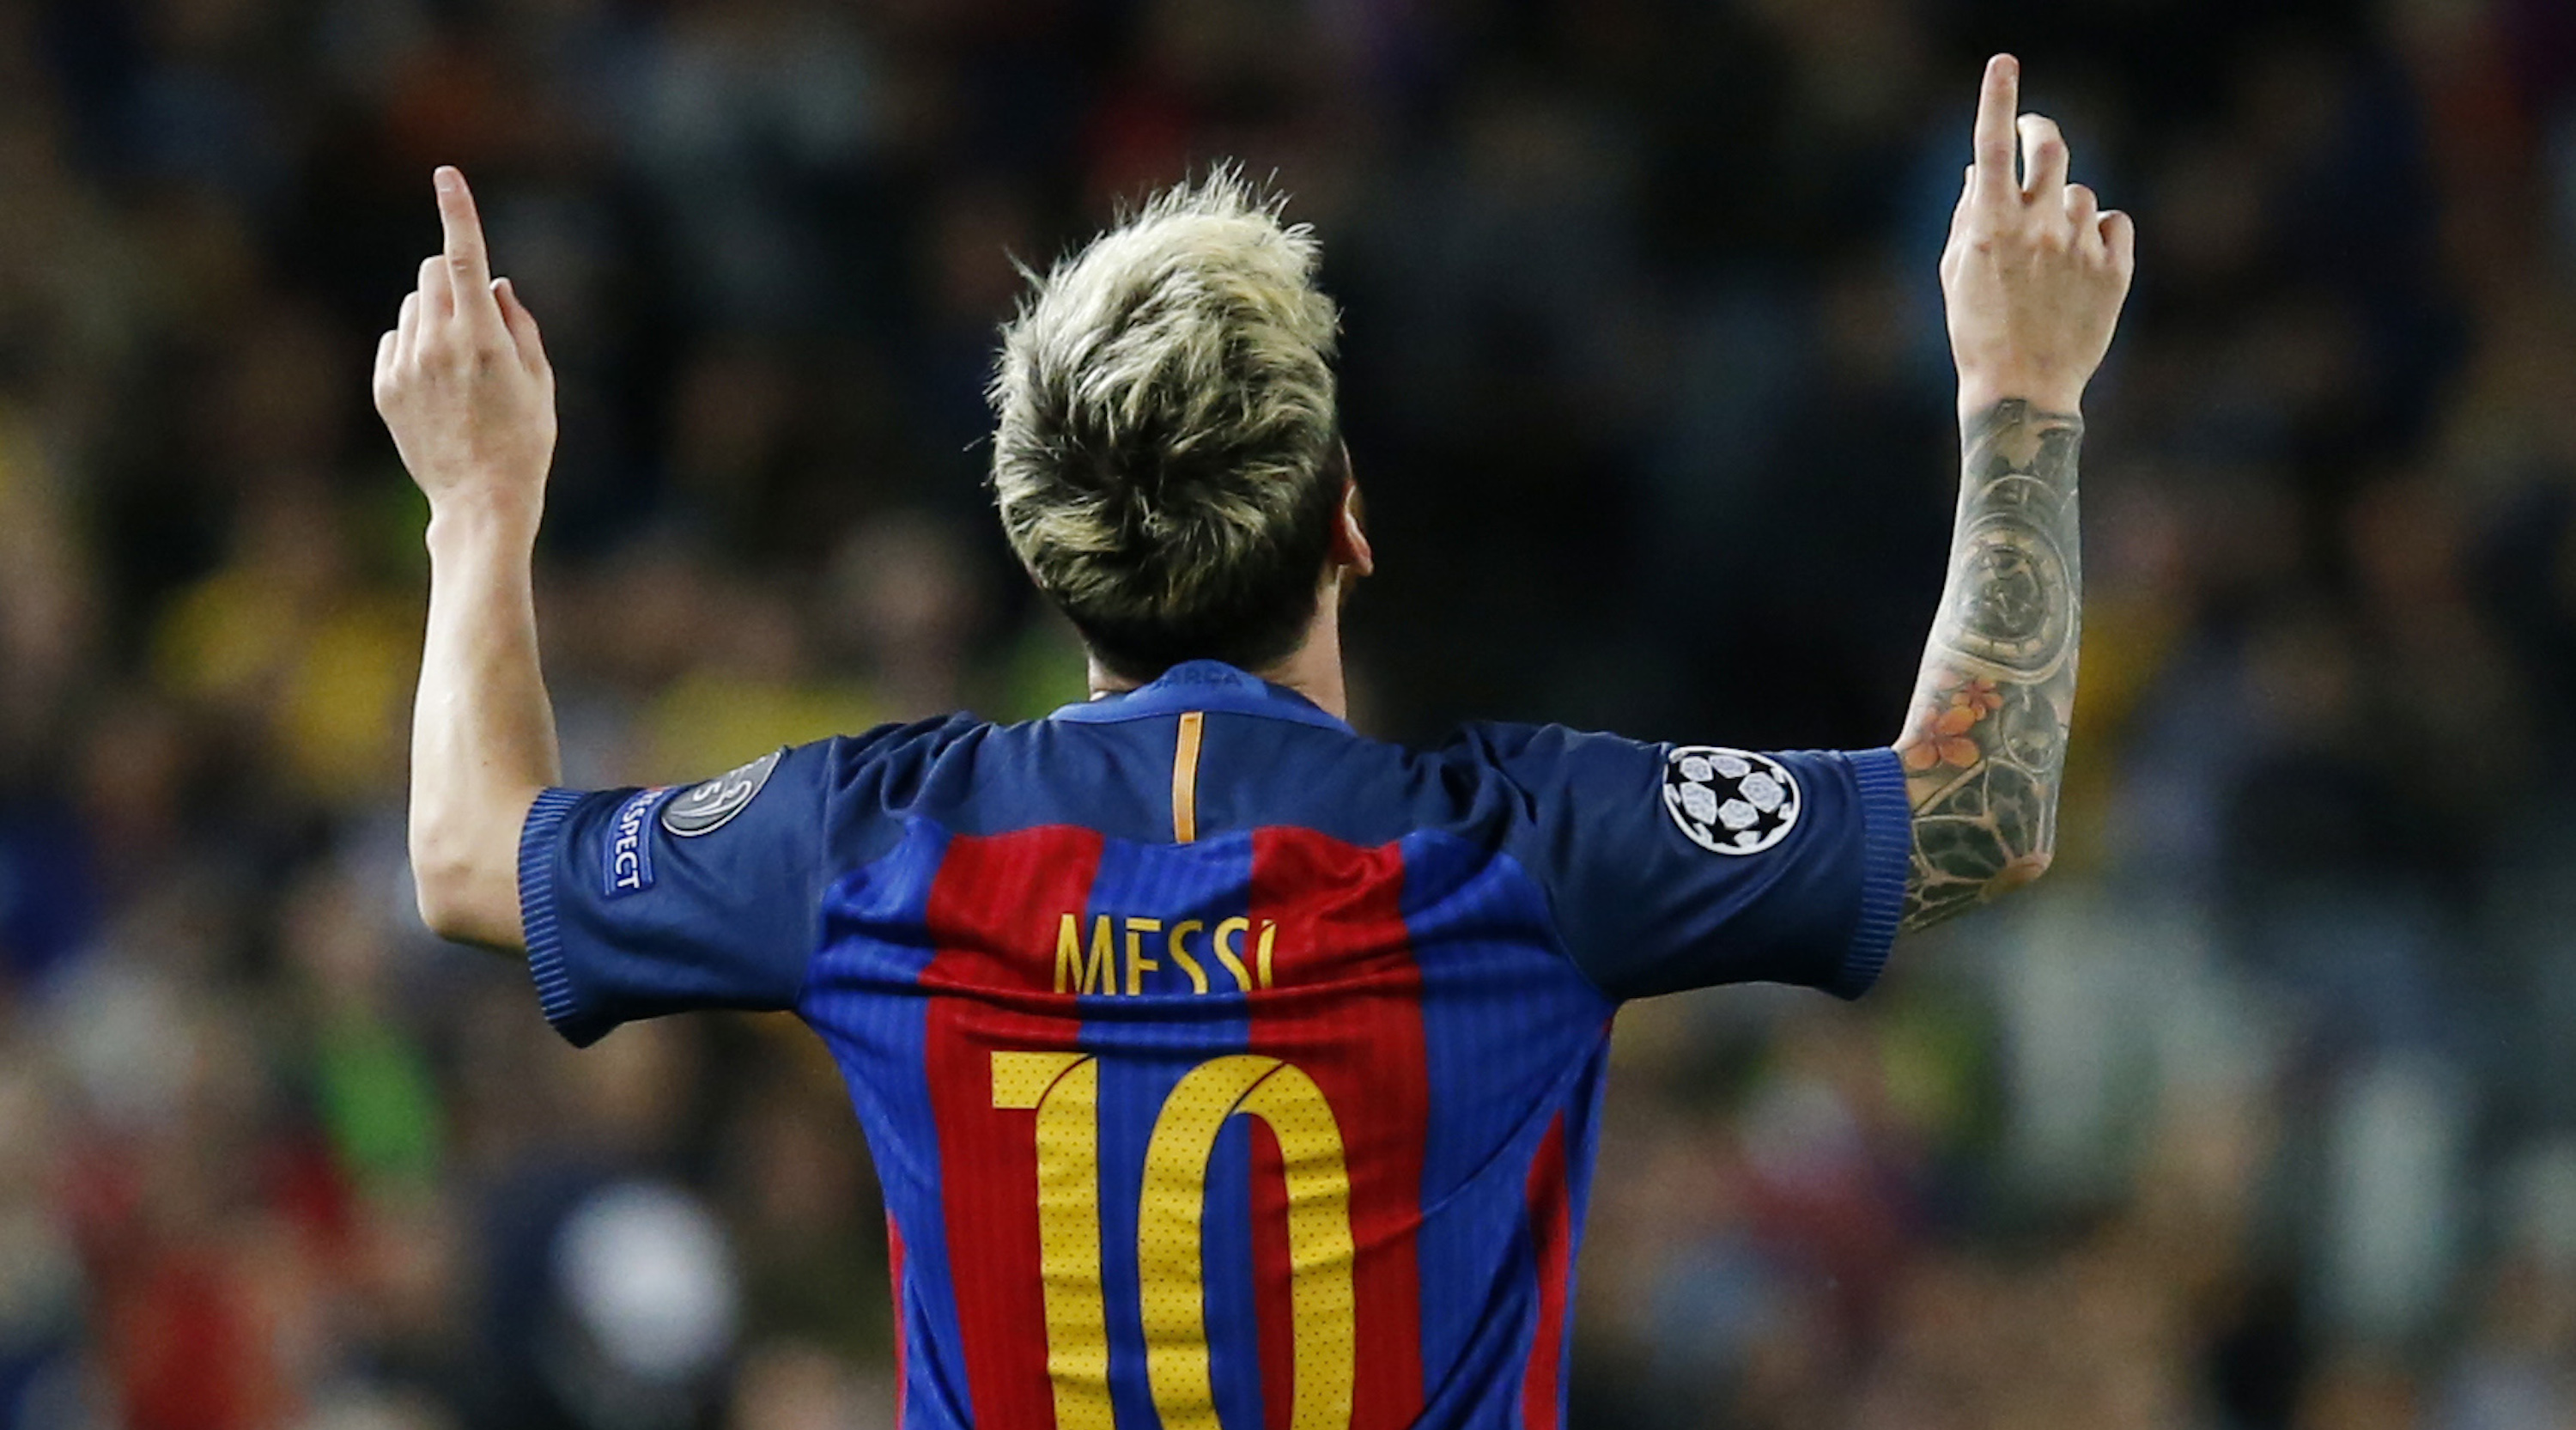 Barcelona's Argentinian forward Lionel Messi celebrates a goal during the UEFA Champions League football match FC Barcelona vs Manchester City at the Camp Nou stadium in Barcelona on October 19, 2016. / AFP / PAU BARRENA (Photo credit should read PAU BARRENA/AFP/Getty Images)